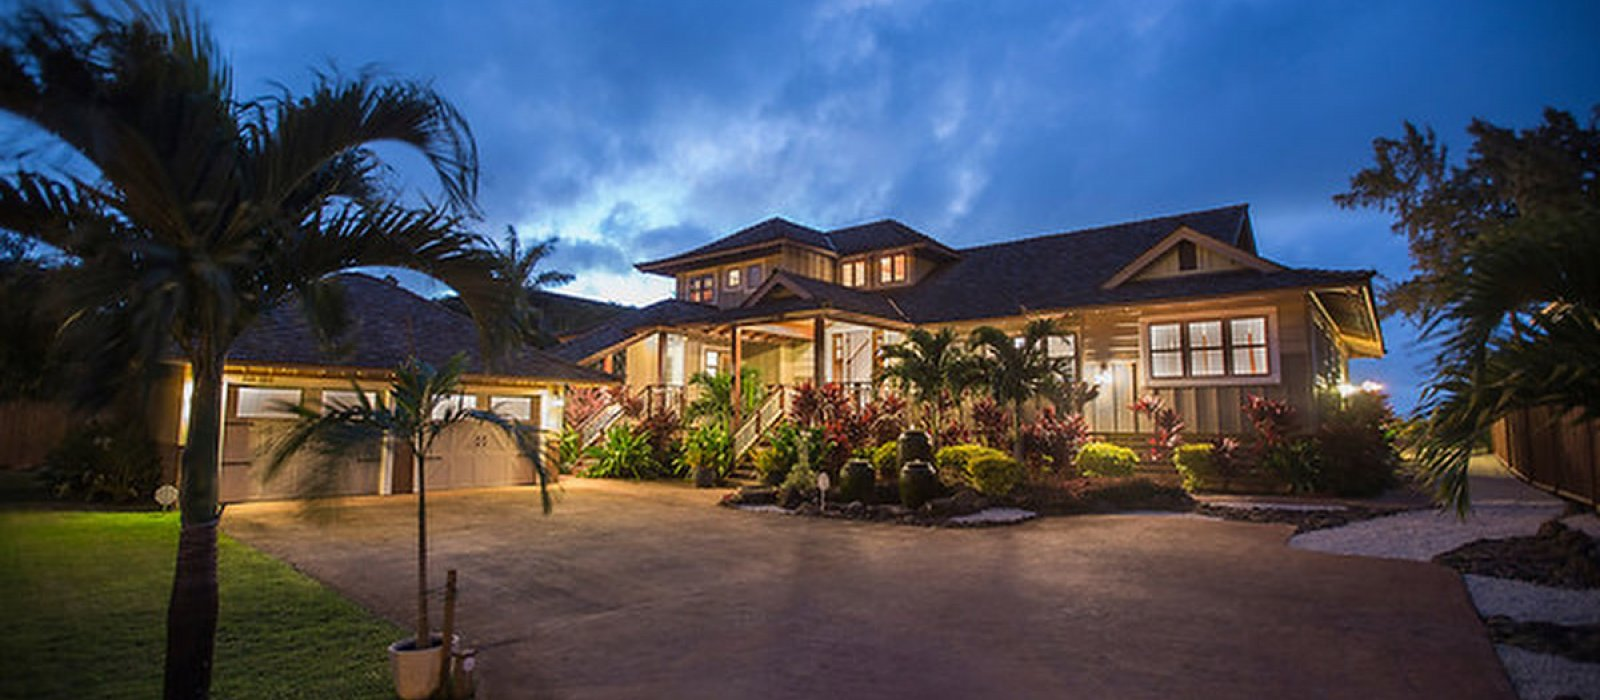 Sunset Beach House North Shore Oahu Vacation Villa